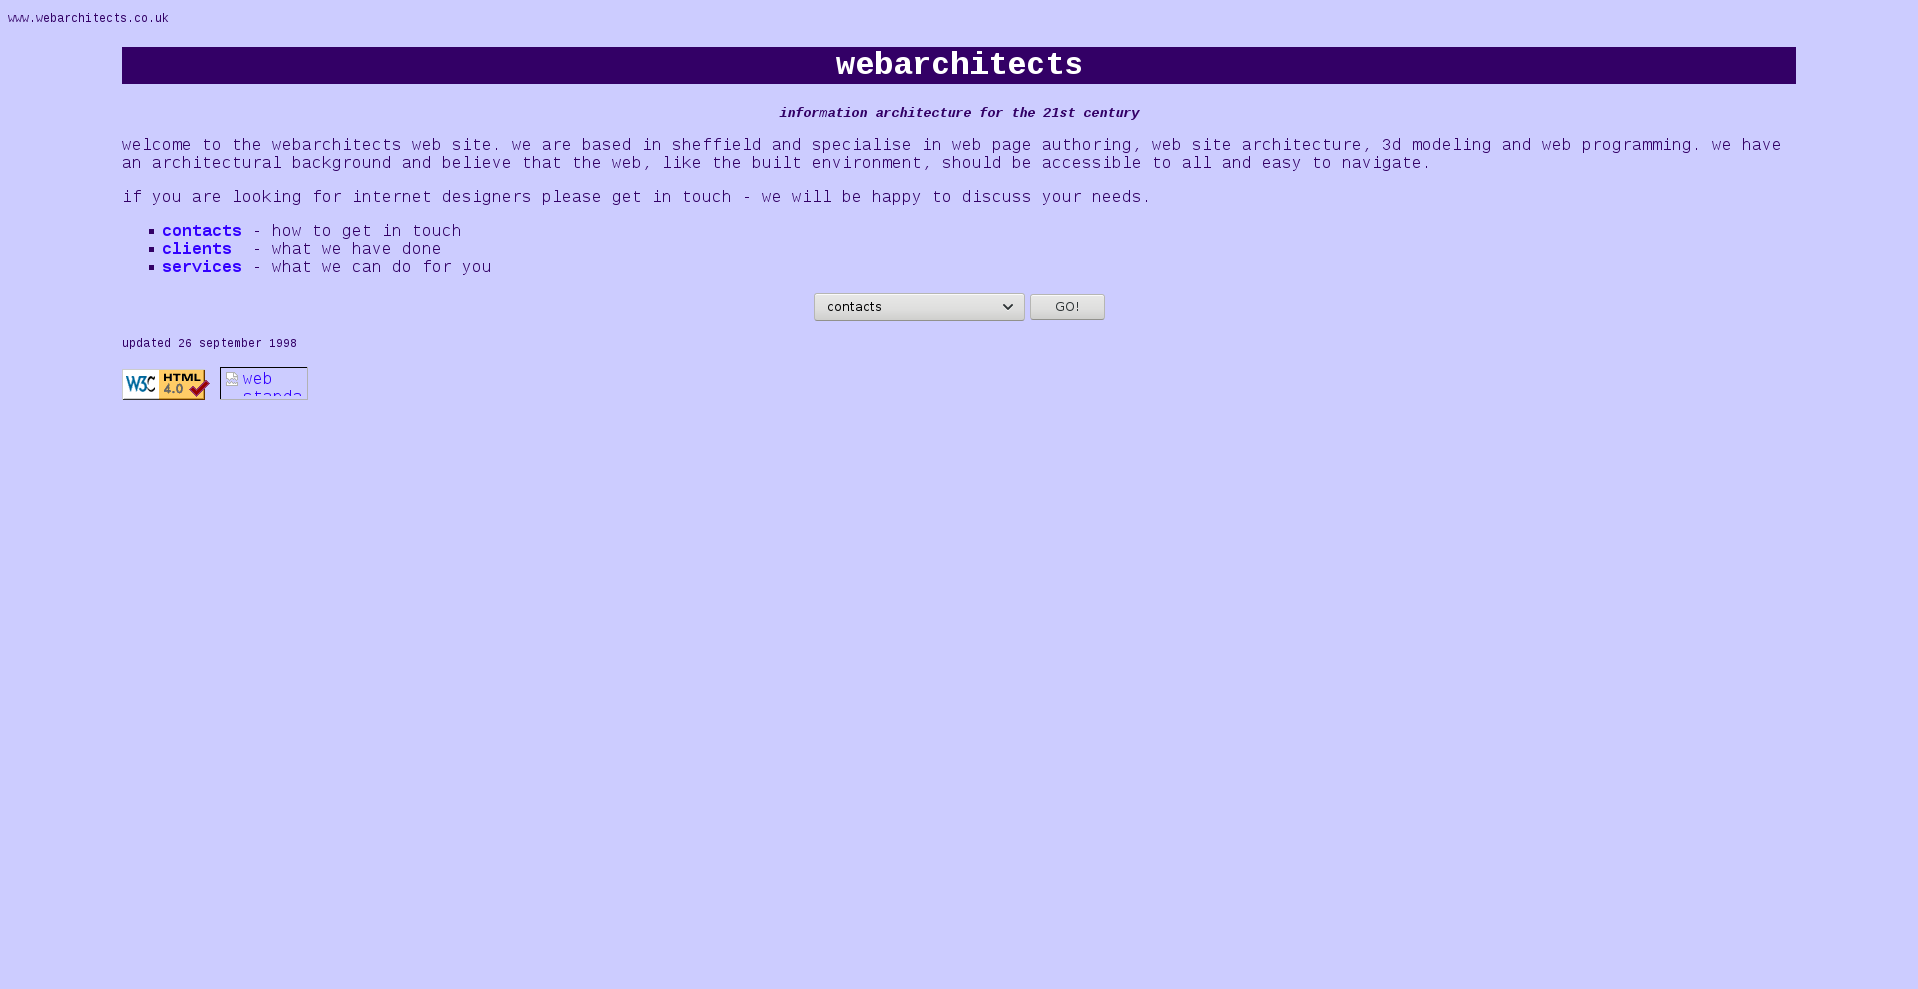 Screenshot of www.webarchitects.co.uk from 1998